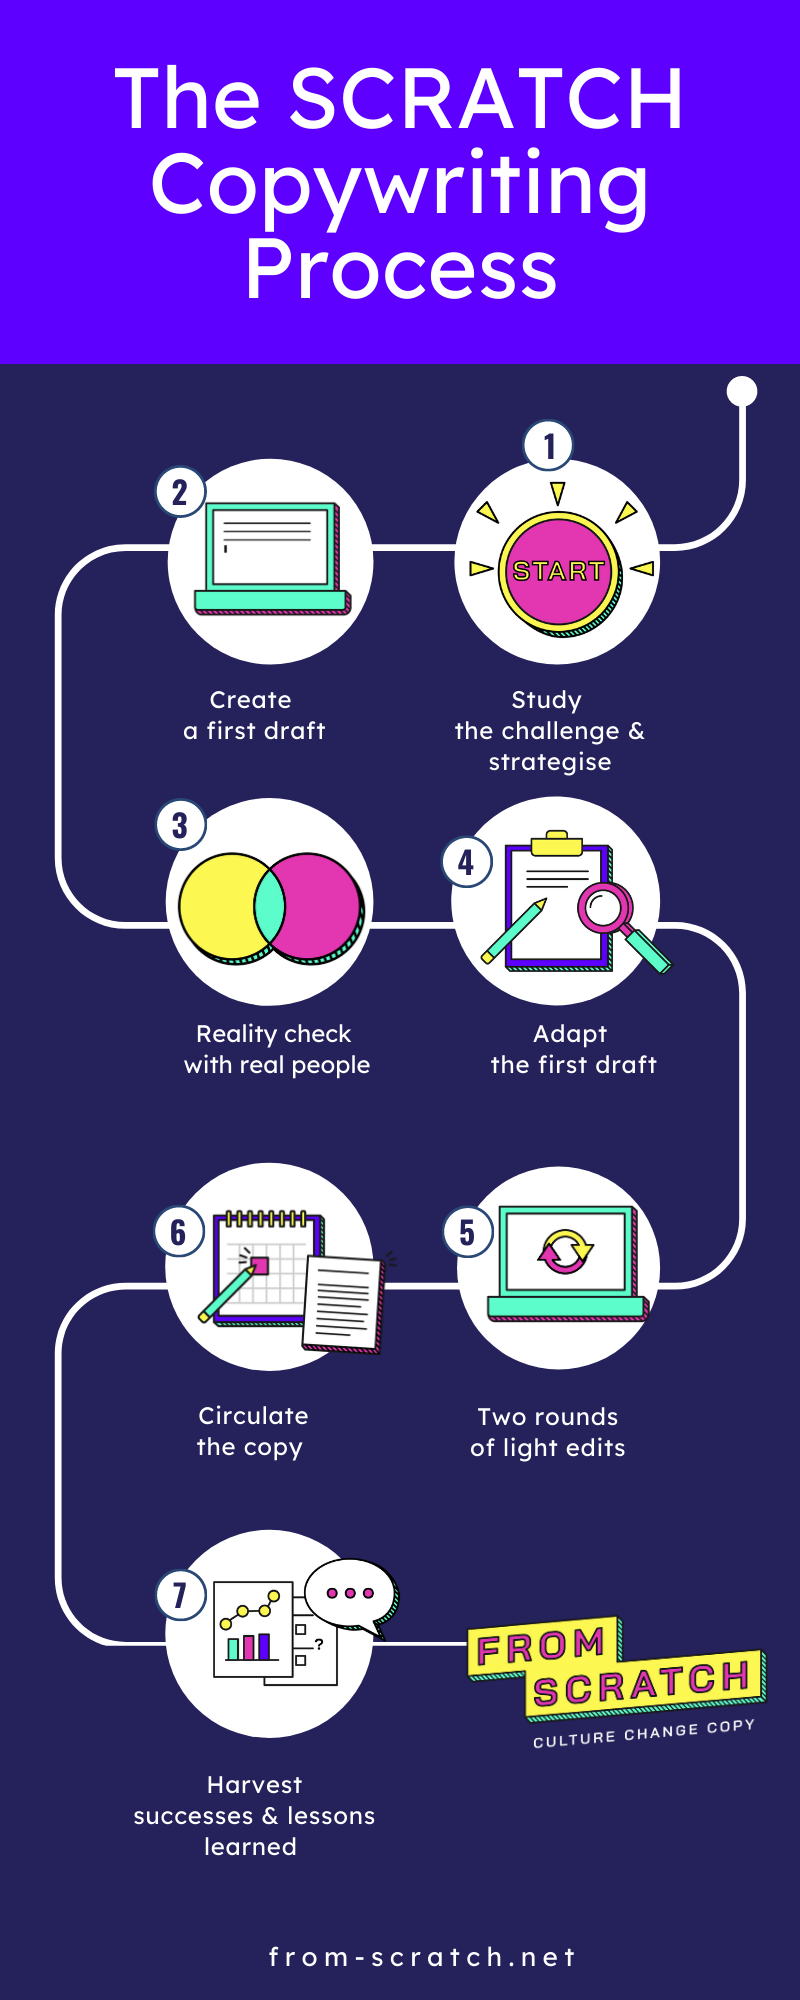 Graphic showing the SCRATCH copywriting process. Transcript appears in the text.